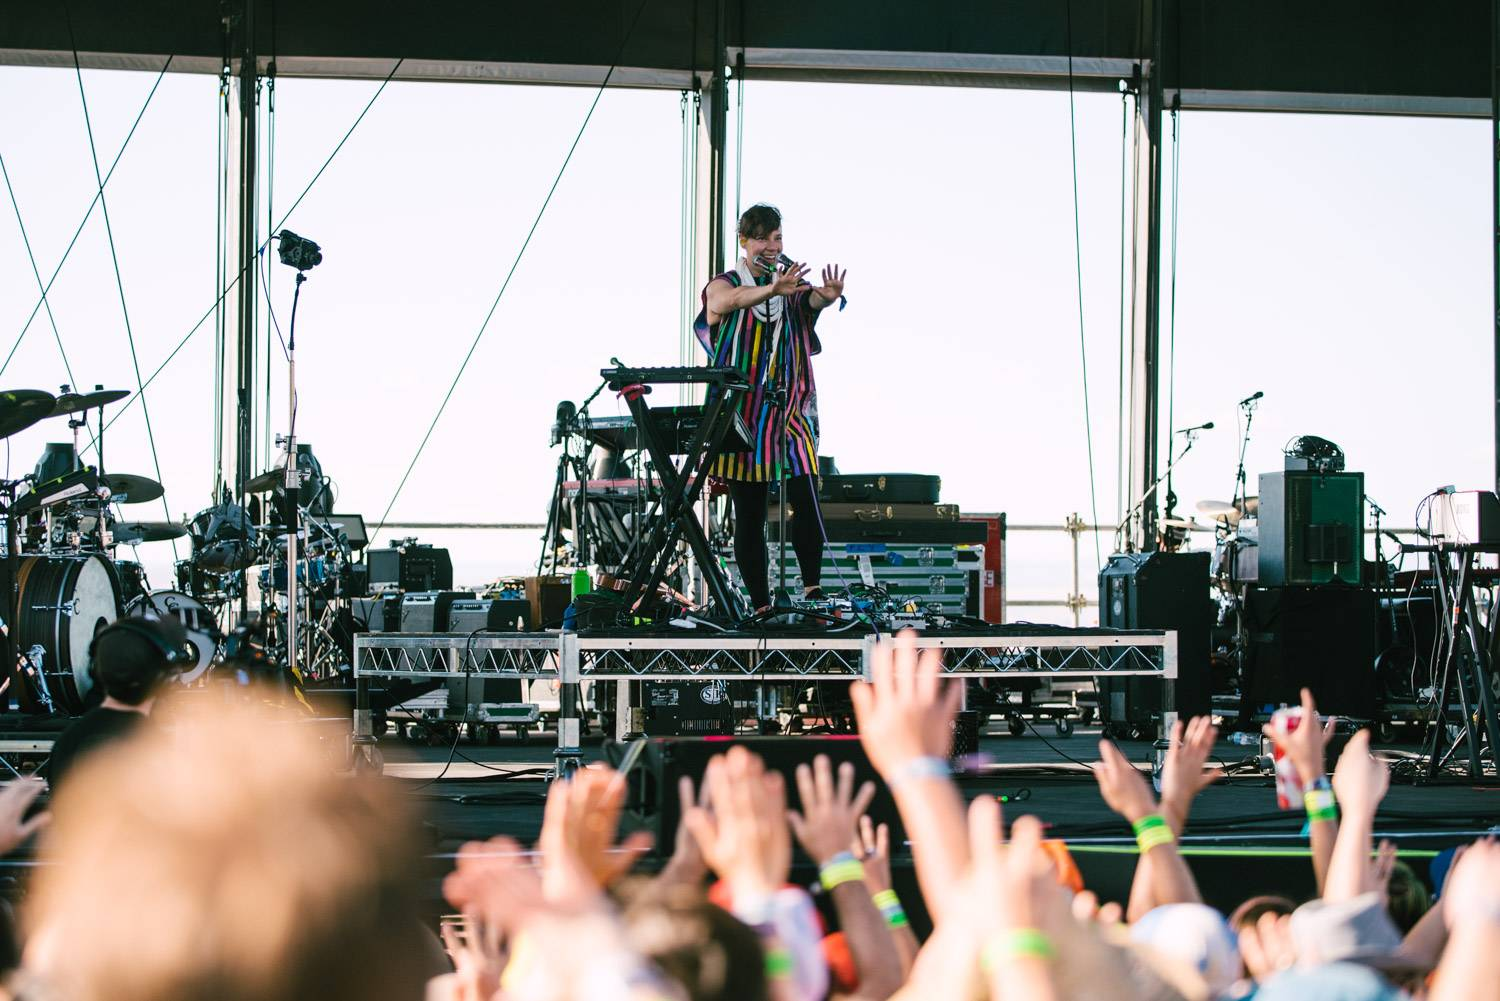 Tune-Yards at the Sasquatch Music Festival 2018 - Day 3, Gorge WA, May 27 2018. Pavel Boiko photo.